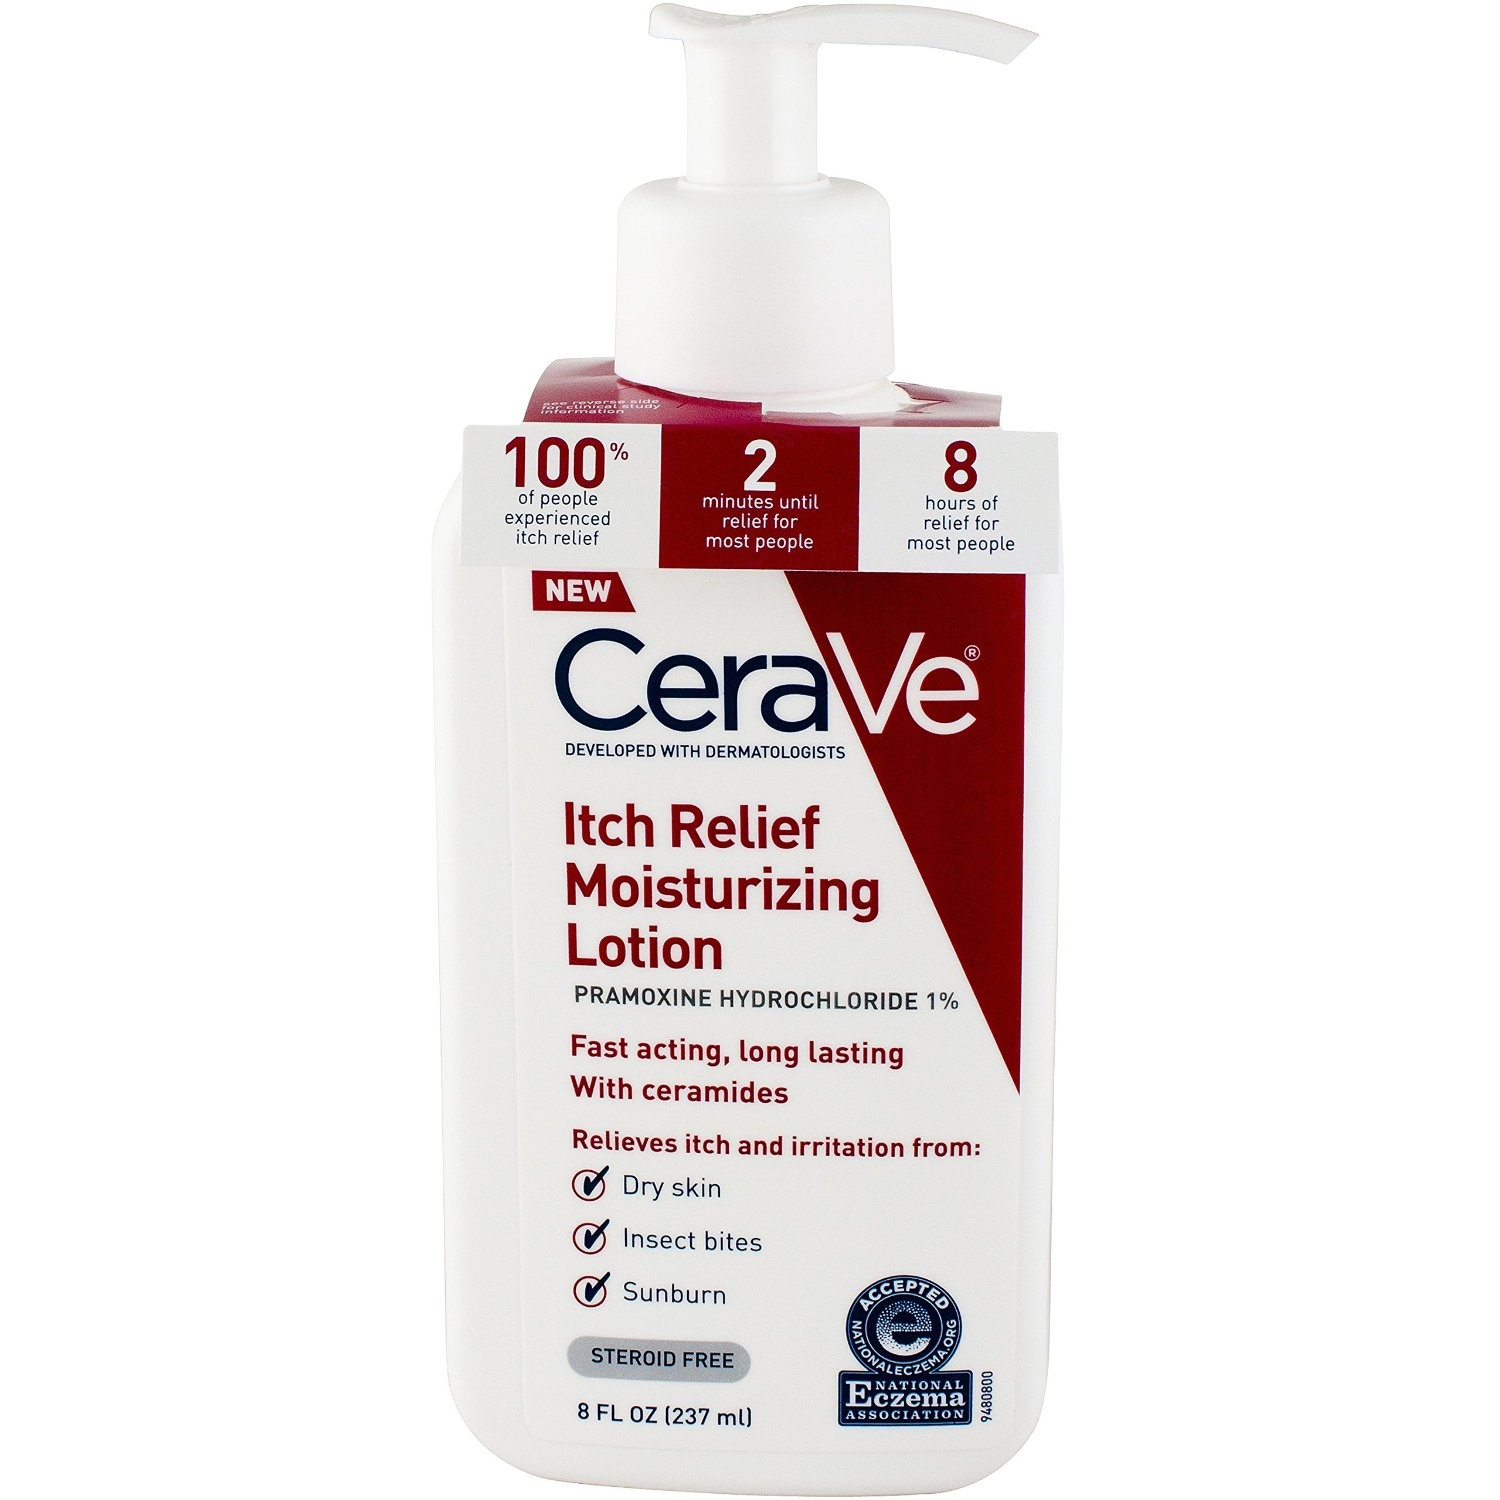 CeraVe Itch Relief Moisturizing Lotion, 8 fl oz